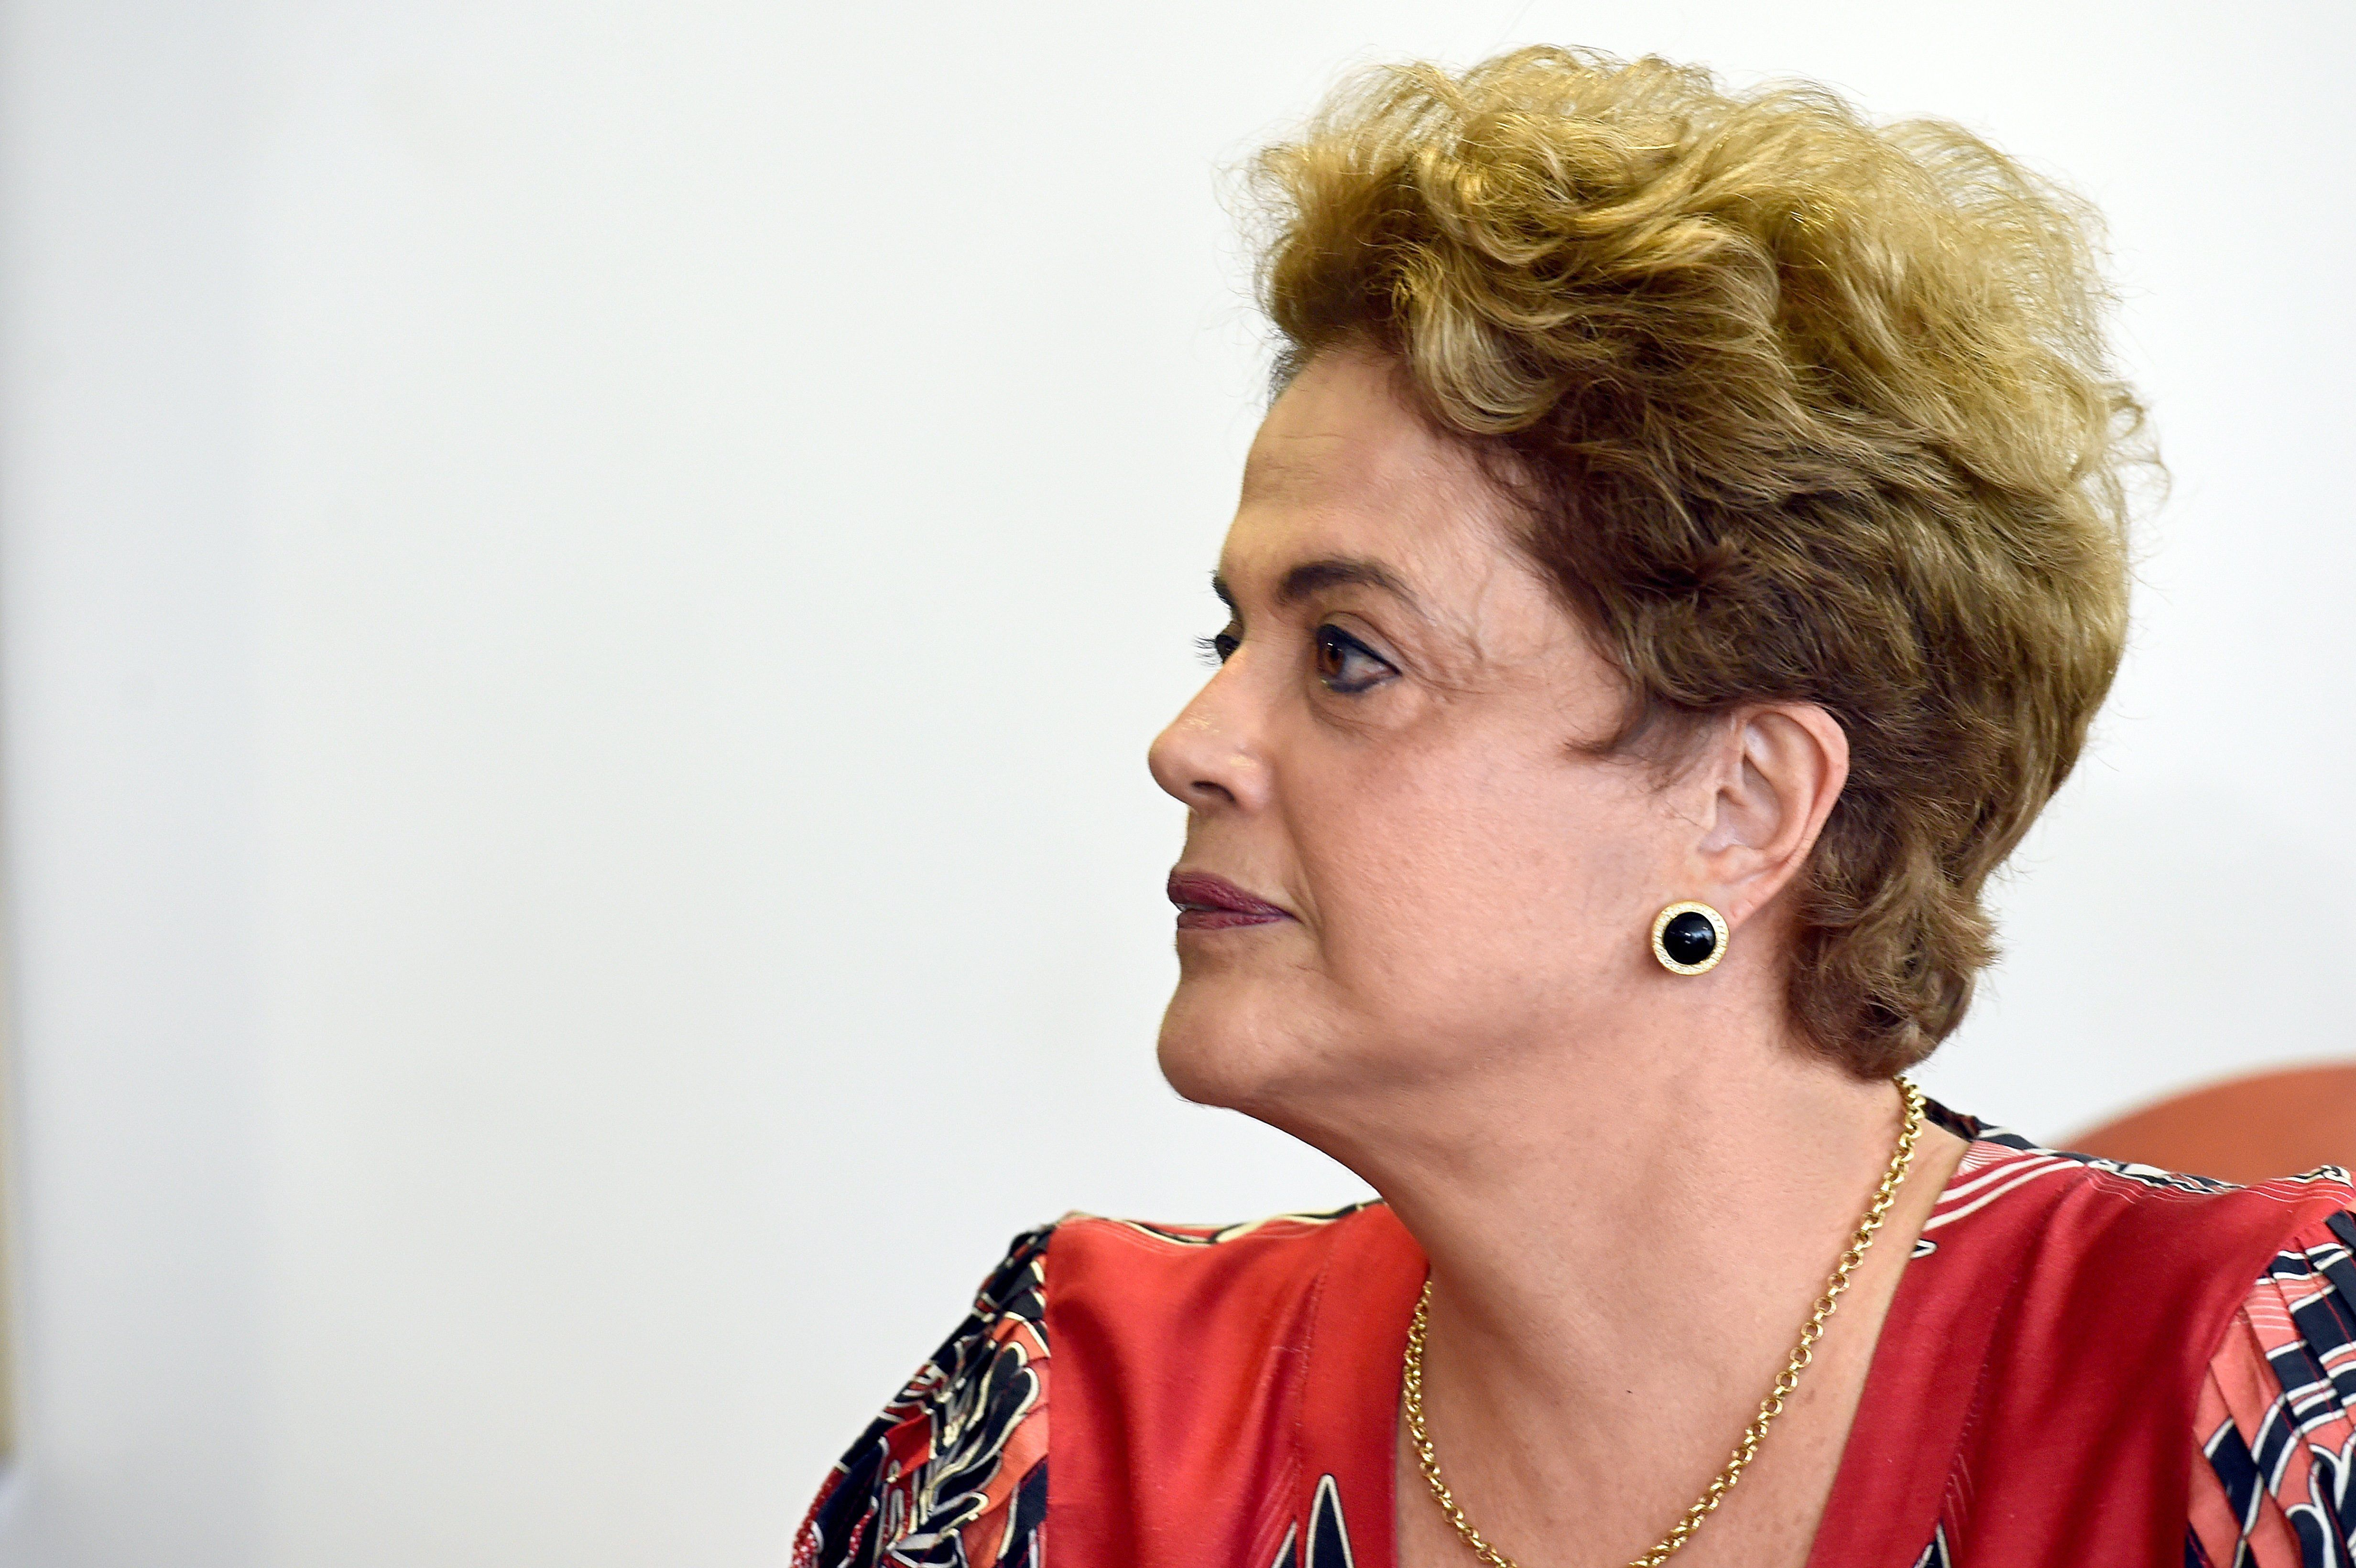 Brazilian President Dilma Rousseff suffered another blow on Tuesday, whenthe powerful Brazilian Democratic Movement Par